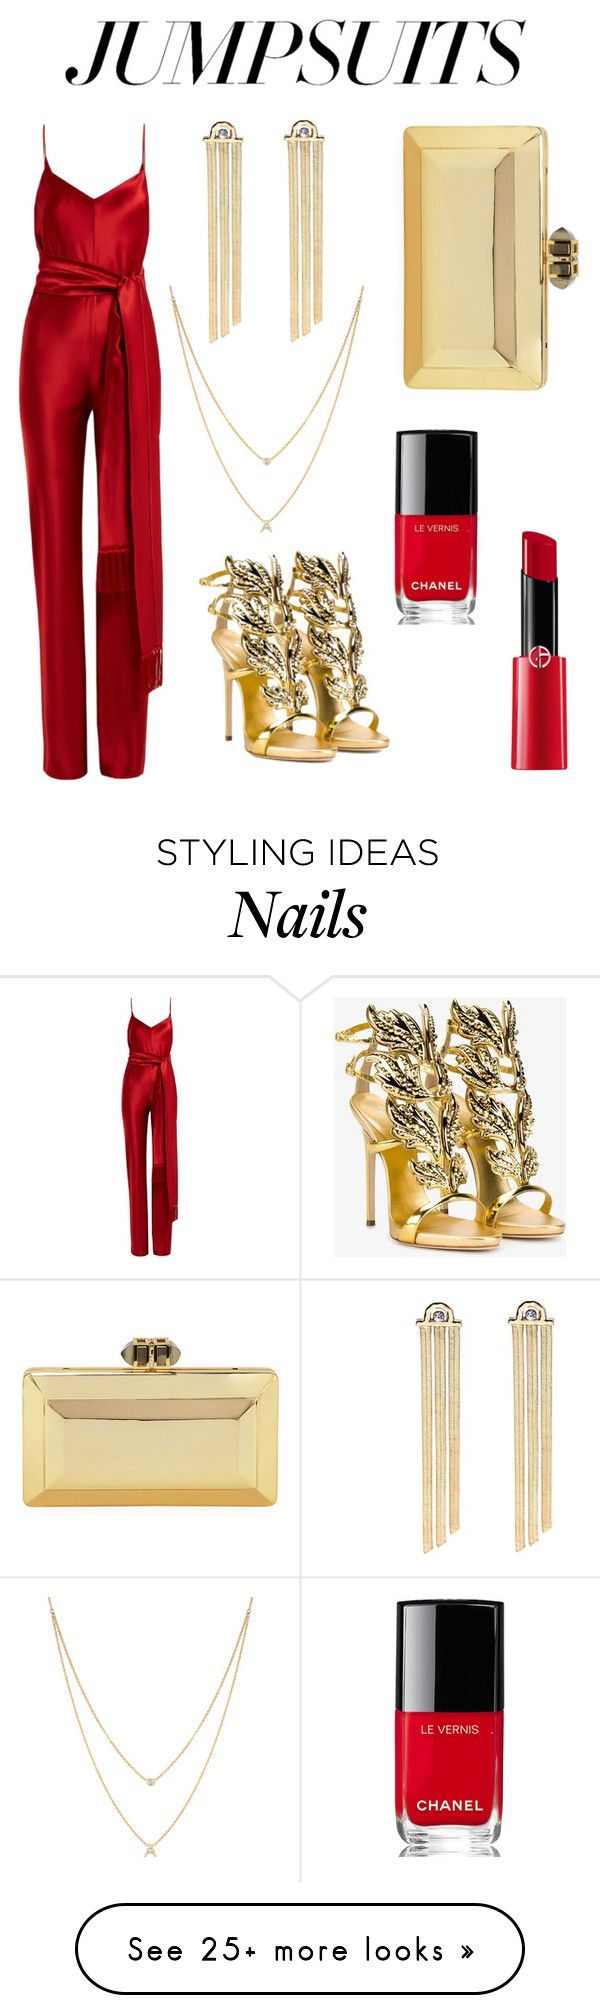 """Untitled #4"" by i-svaliavina on Polyvore featuring Galvan, Giuseppe Zanotti, EF Collection, Chanel, Giorgio Armani and jumpsuits"